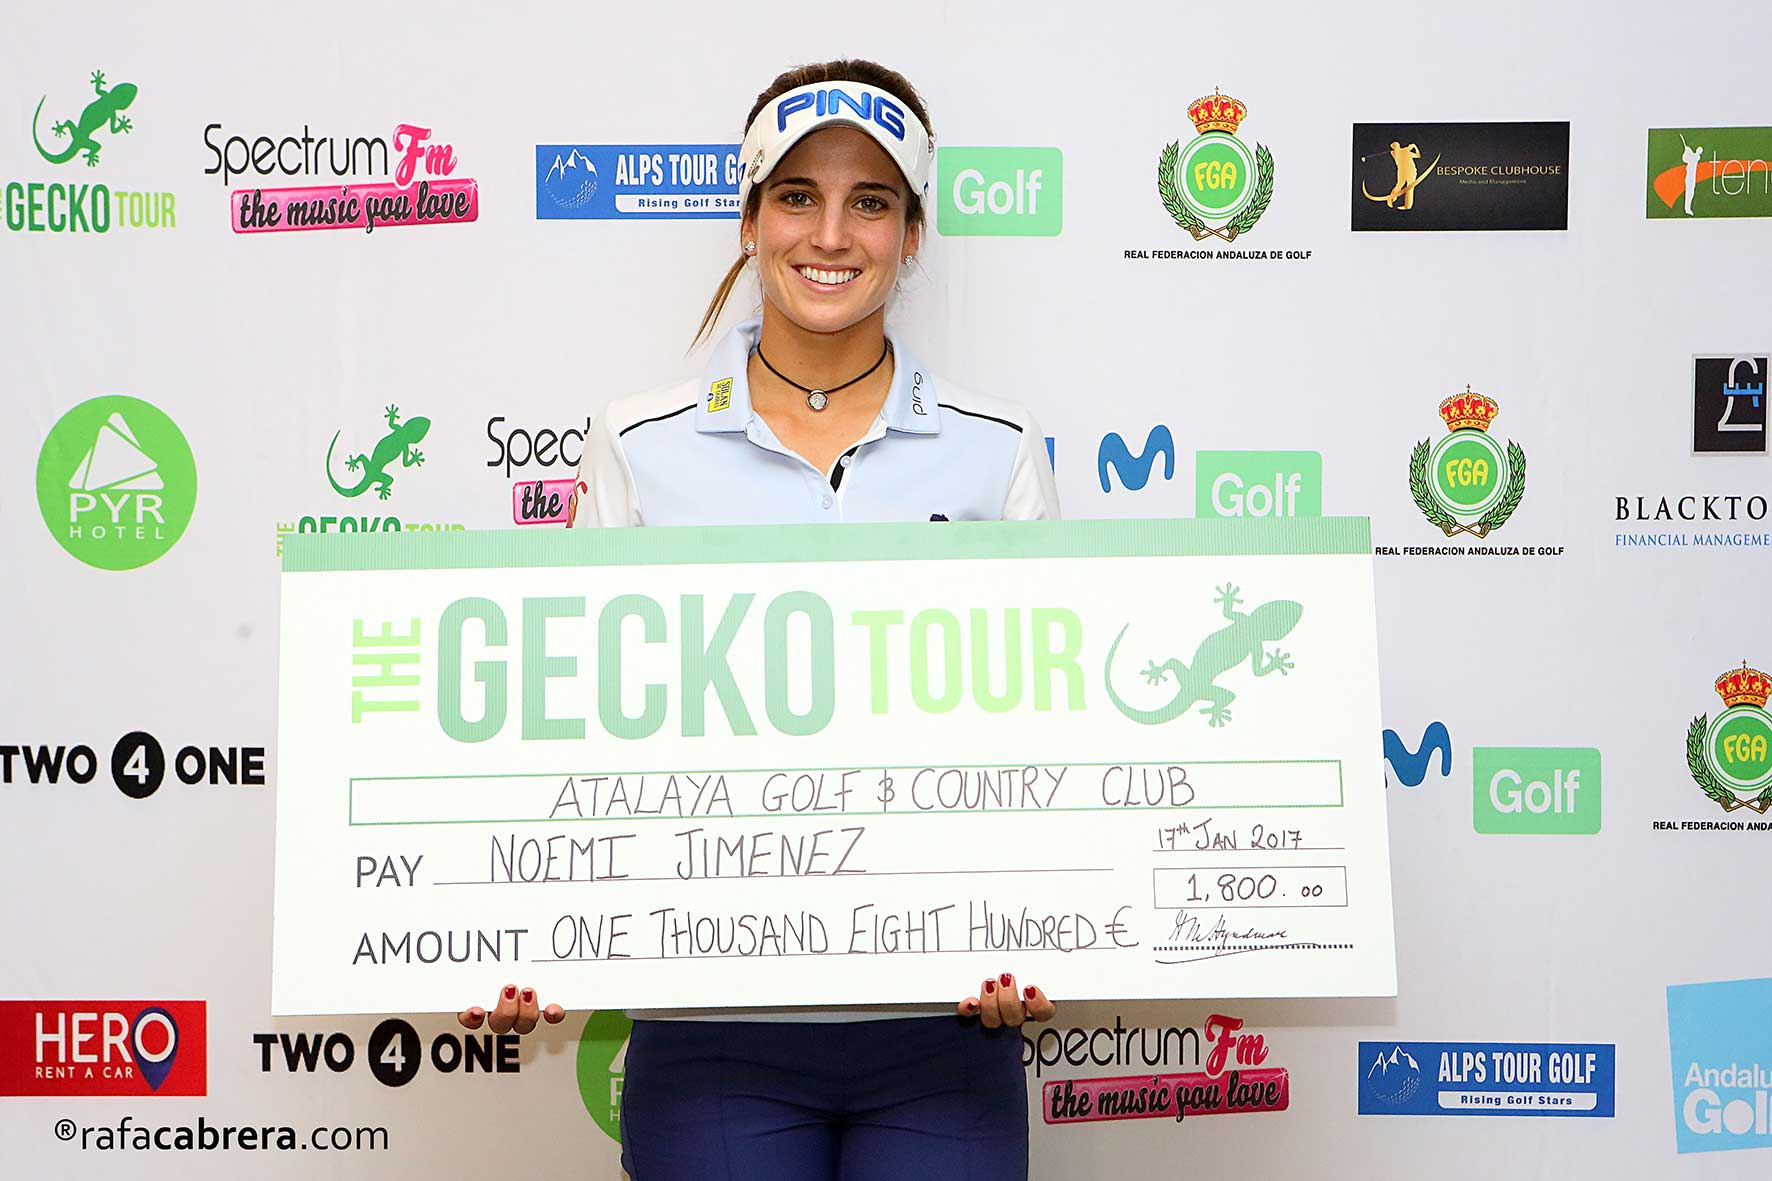 NOEMI JIMÉNEZ MAKES HISTORY IN GECKO TOUR